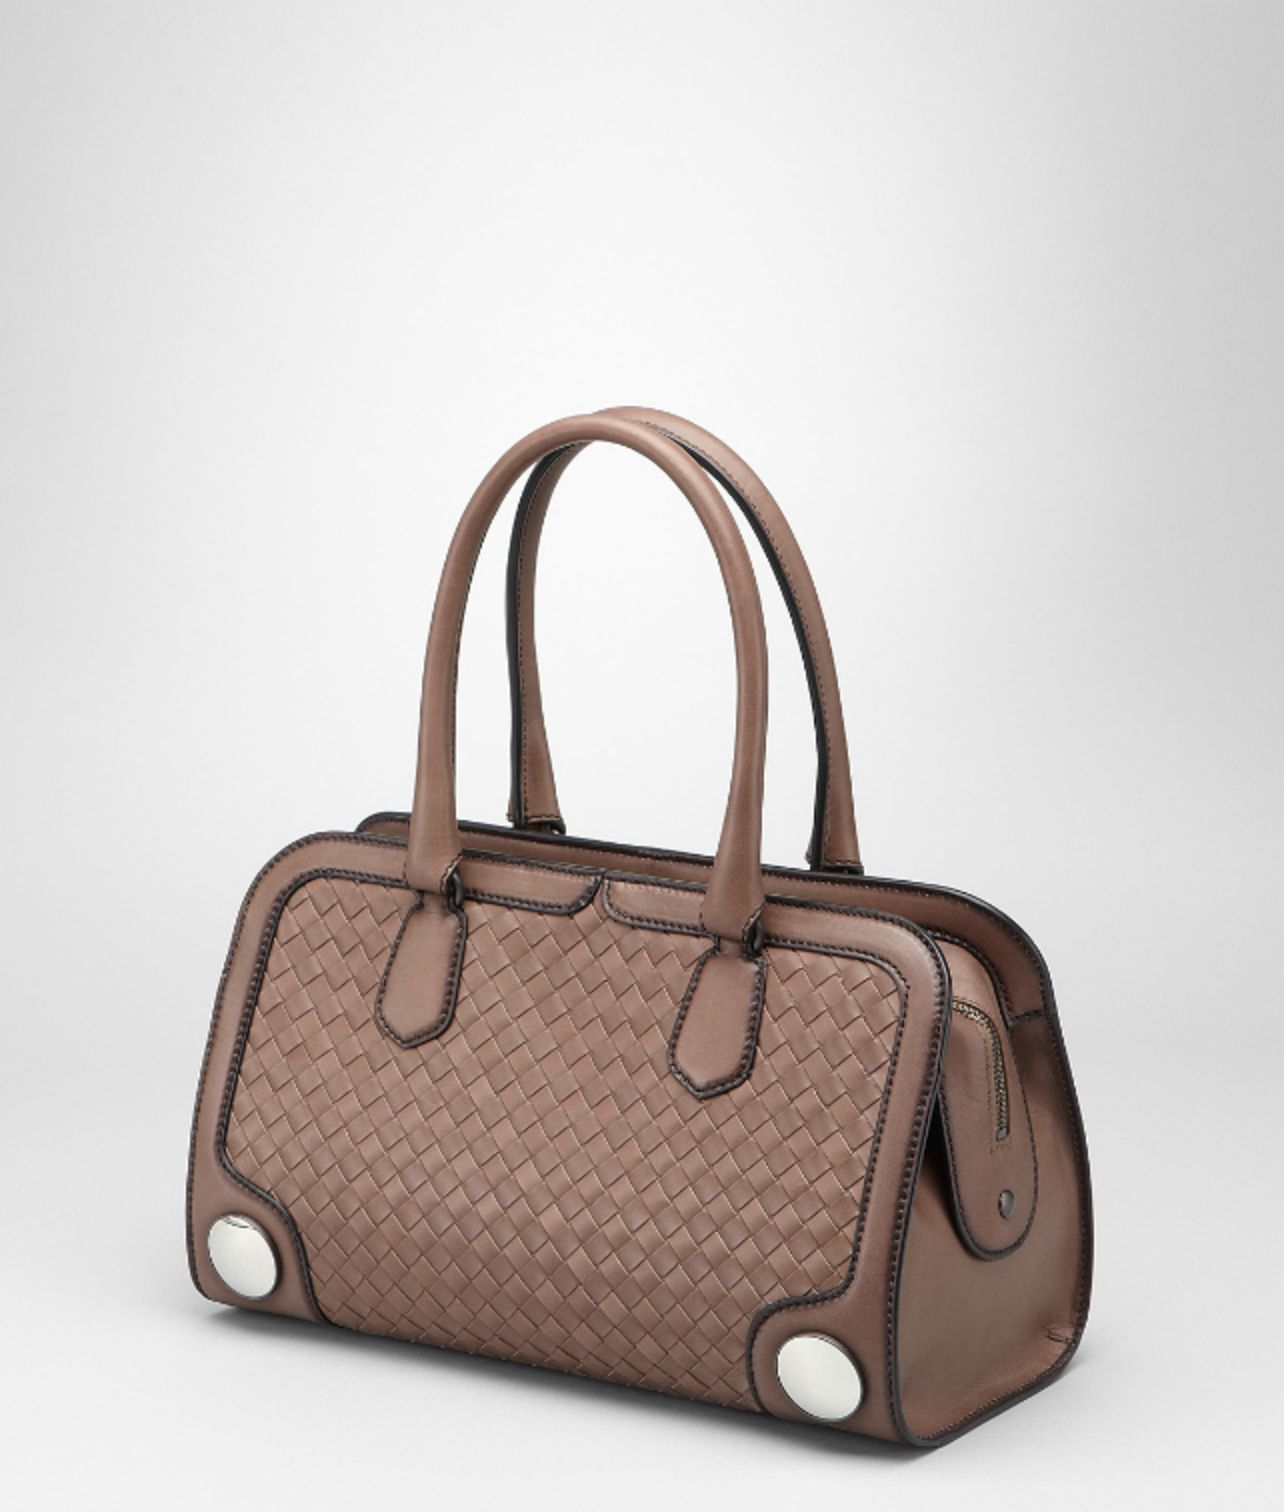 Bottega Veneta Mud Intreccio Border Calf Sphere Bag In